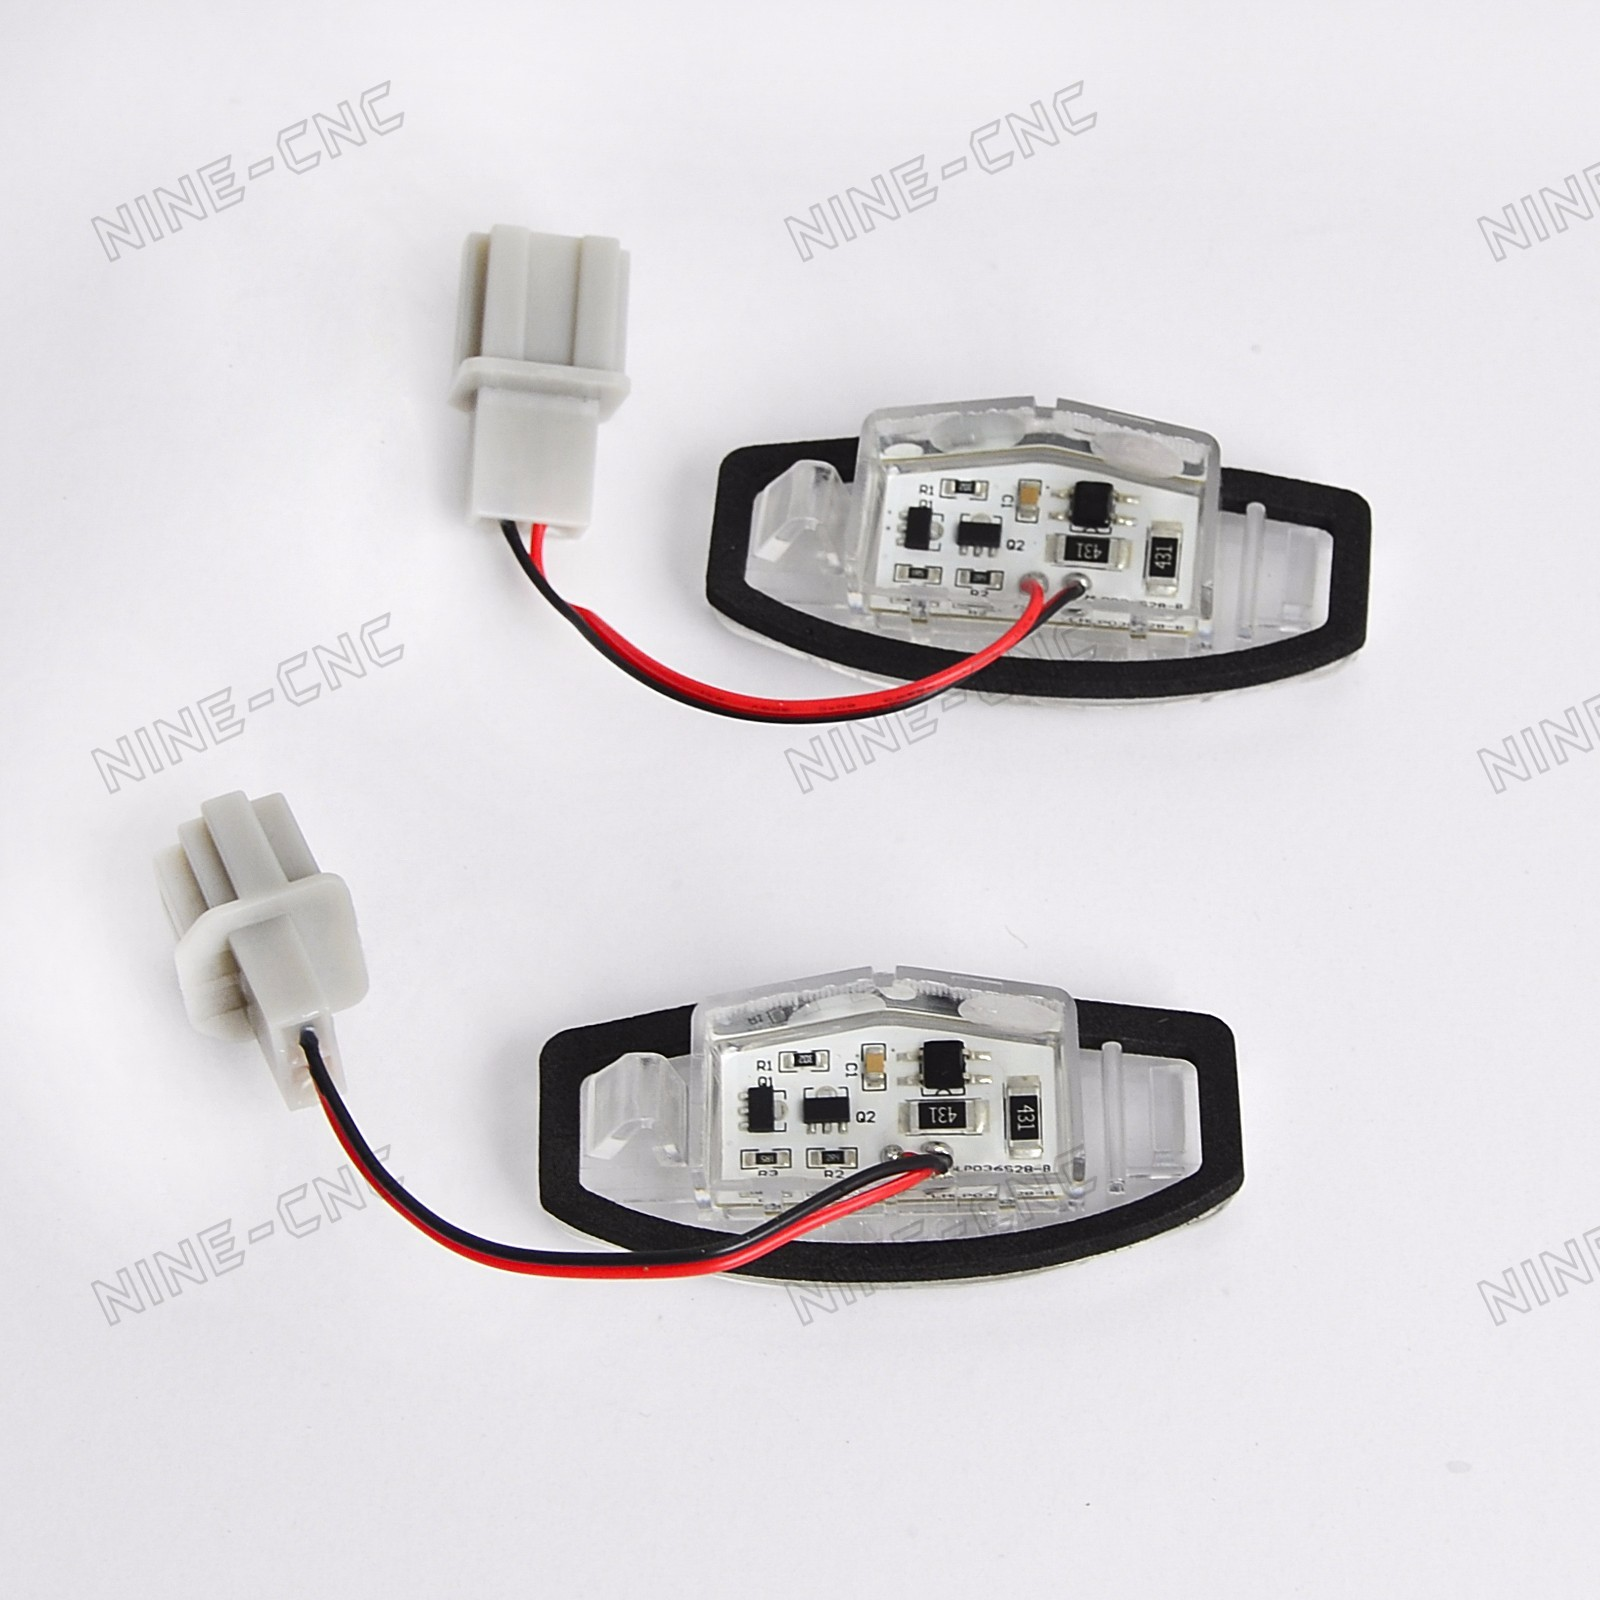 2x 18 Smd Led License Plate Light For Acura Tl Honda Pilot 2003 2008 Wiring Connectors 2007 2009